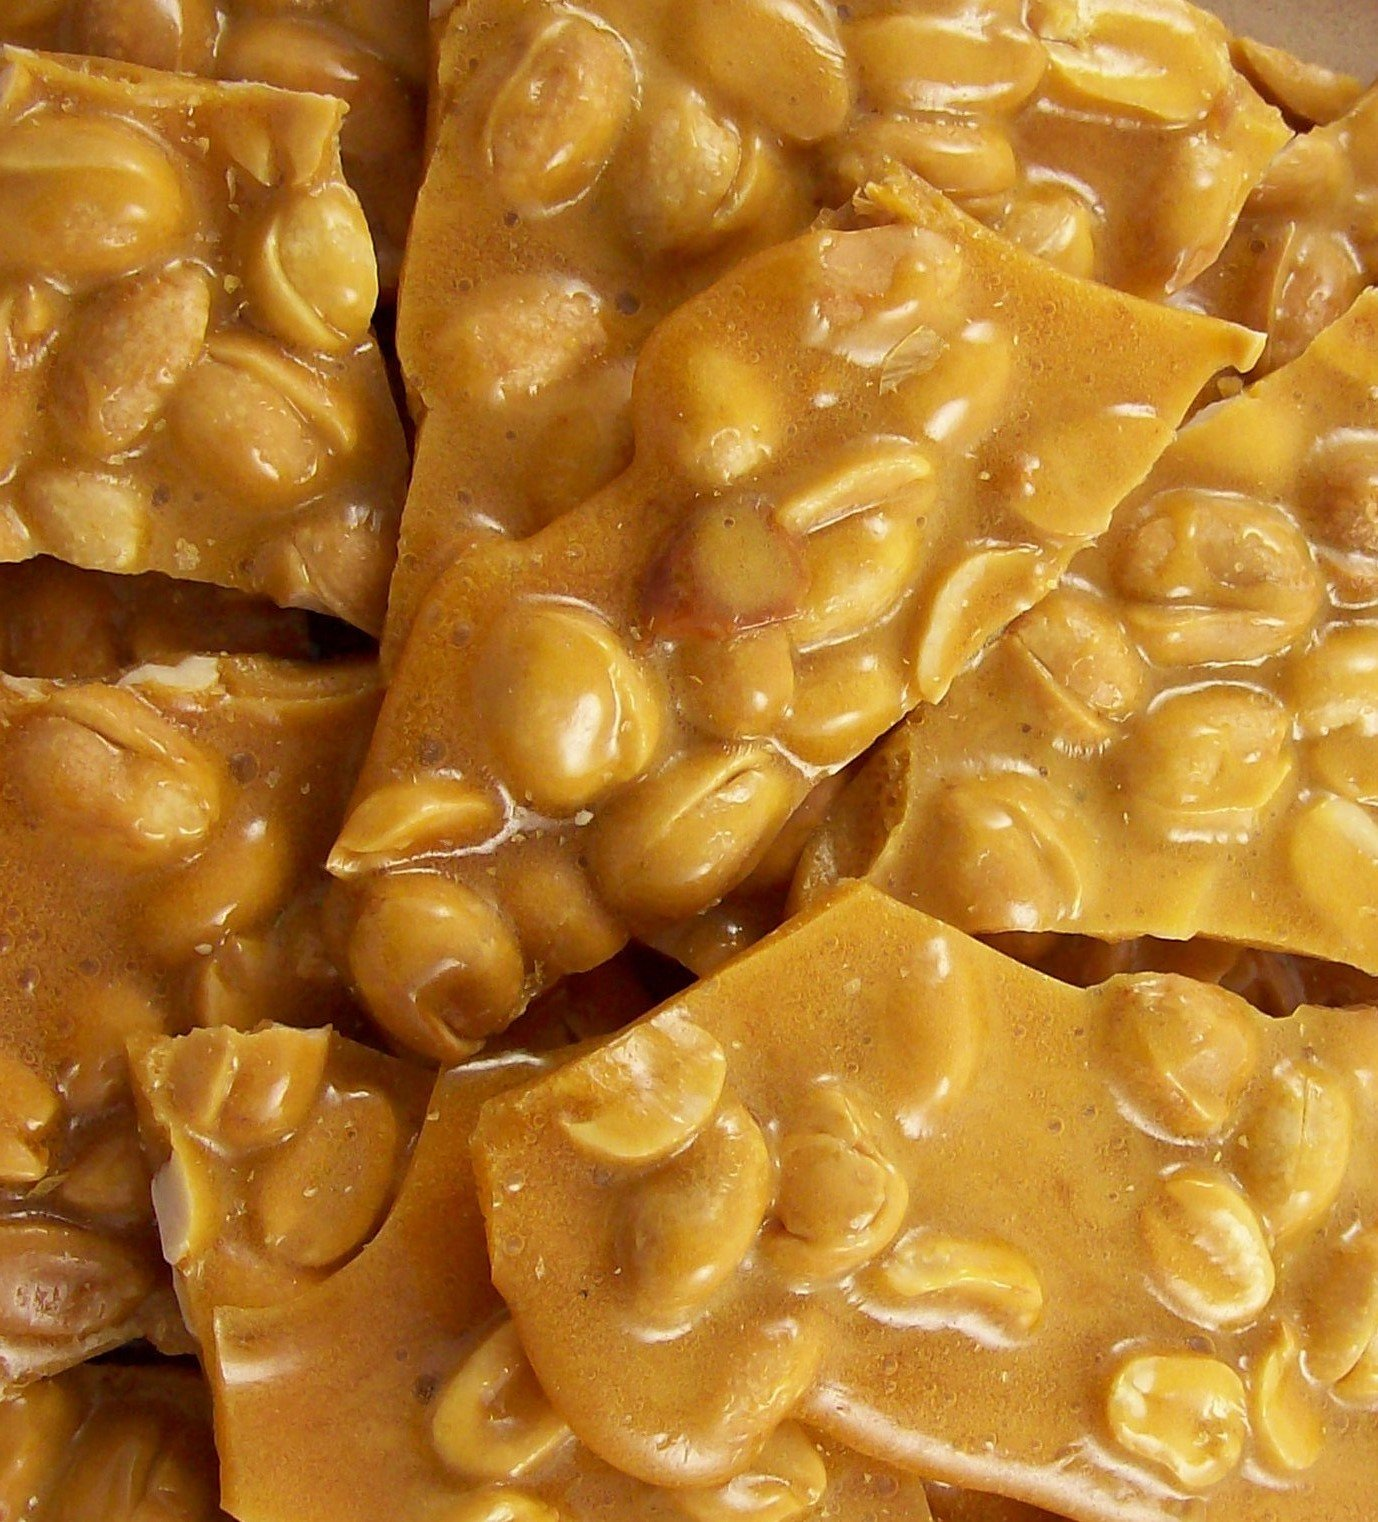 Vegan Cashew Brittle 1 HUGE !! Pounds Made Fresh ONLY to order NO BUTTER VEGAN CANDY by The Brittle Box Candy Co.